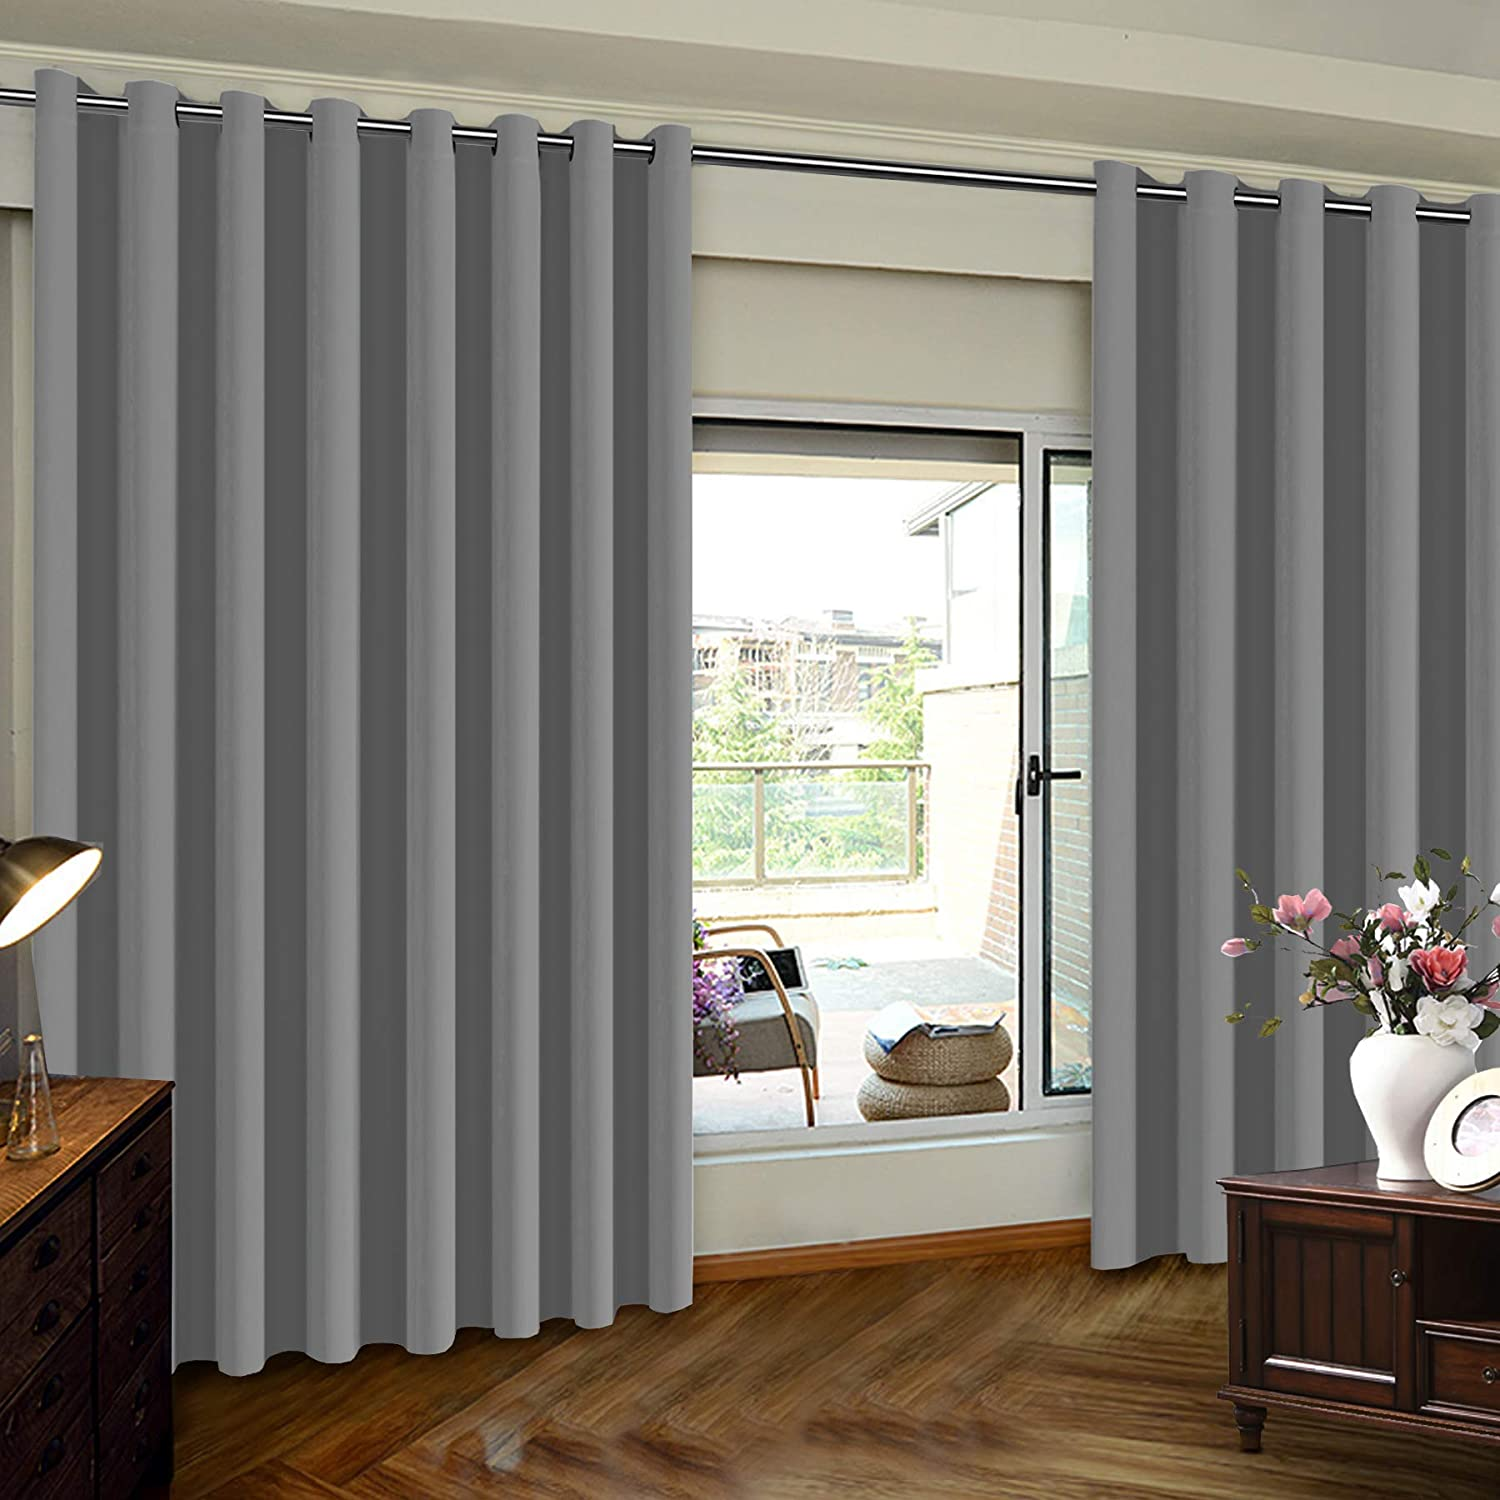 Turquoize Blackout Curtains Be super welcome Max 49% OFF Extra Door Sliding Wide for